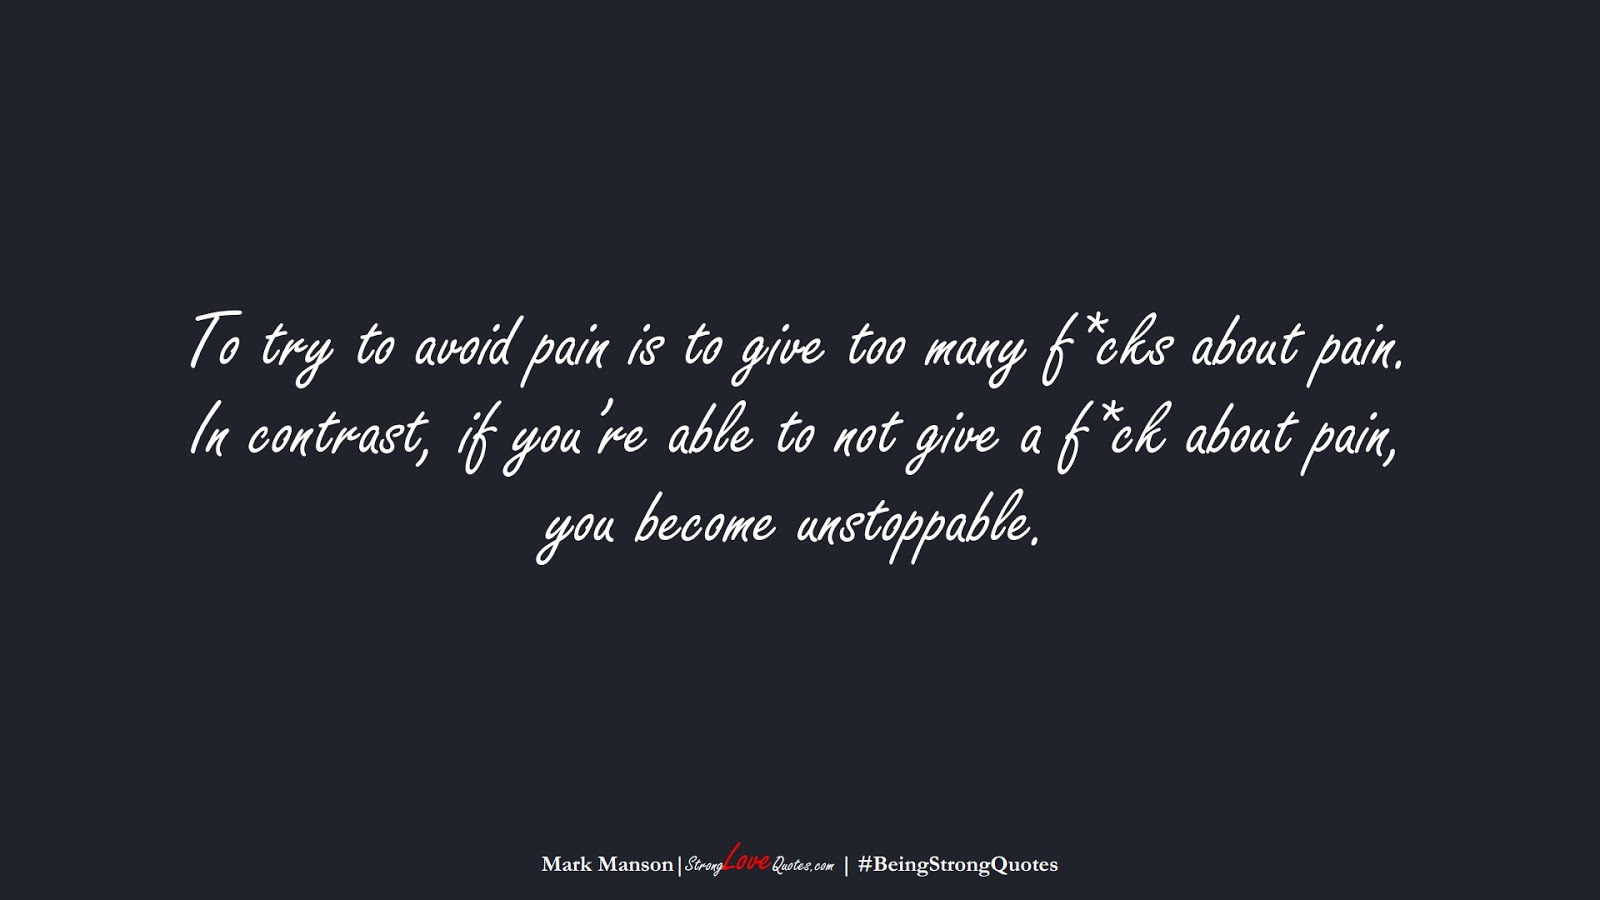 To try to avoid pain is to give too many f*cks about pain. In contrast, if you're able to not give a f*ck about pain, you become unstoppable. (Mark Manson);  #BeingStrongQuotes